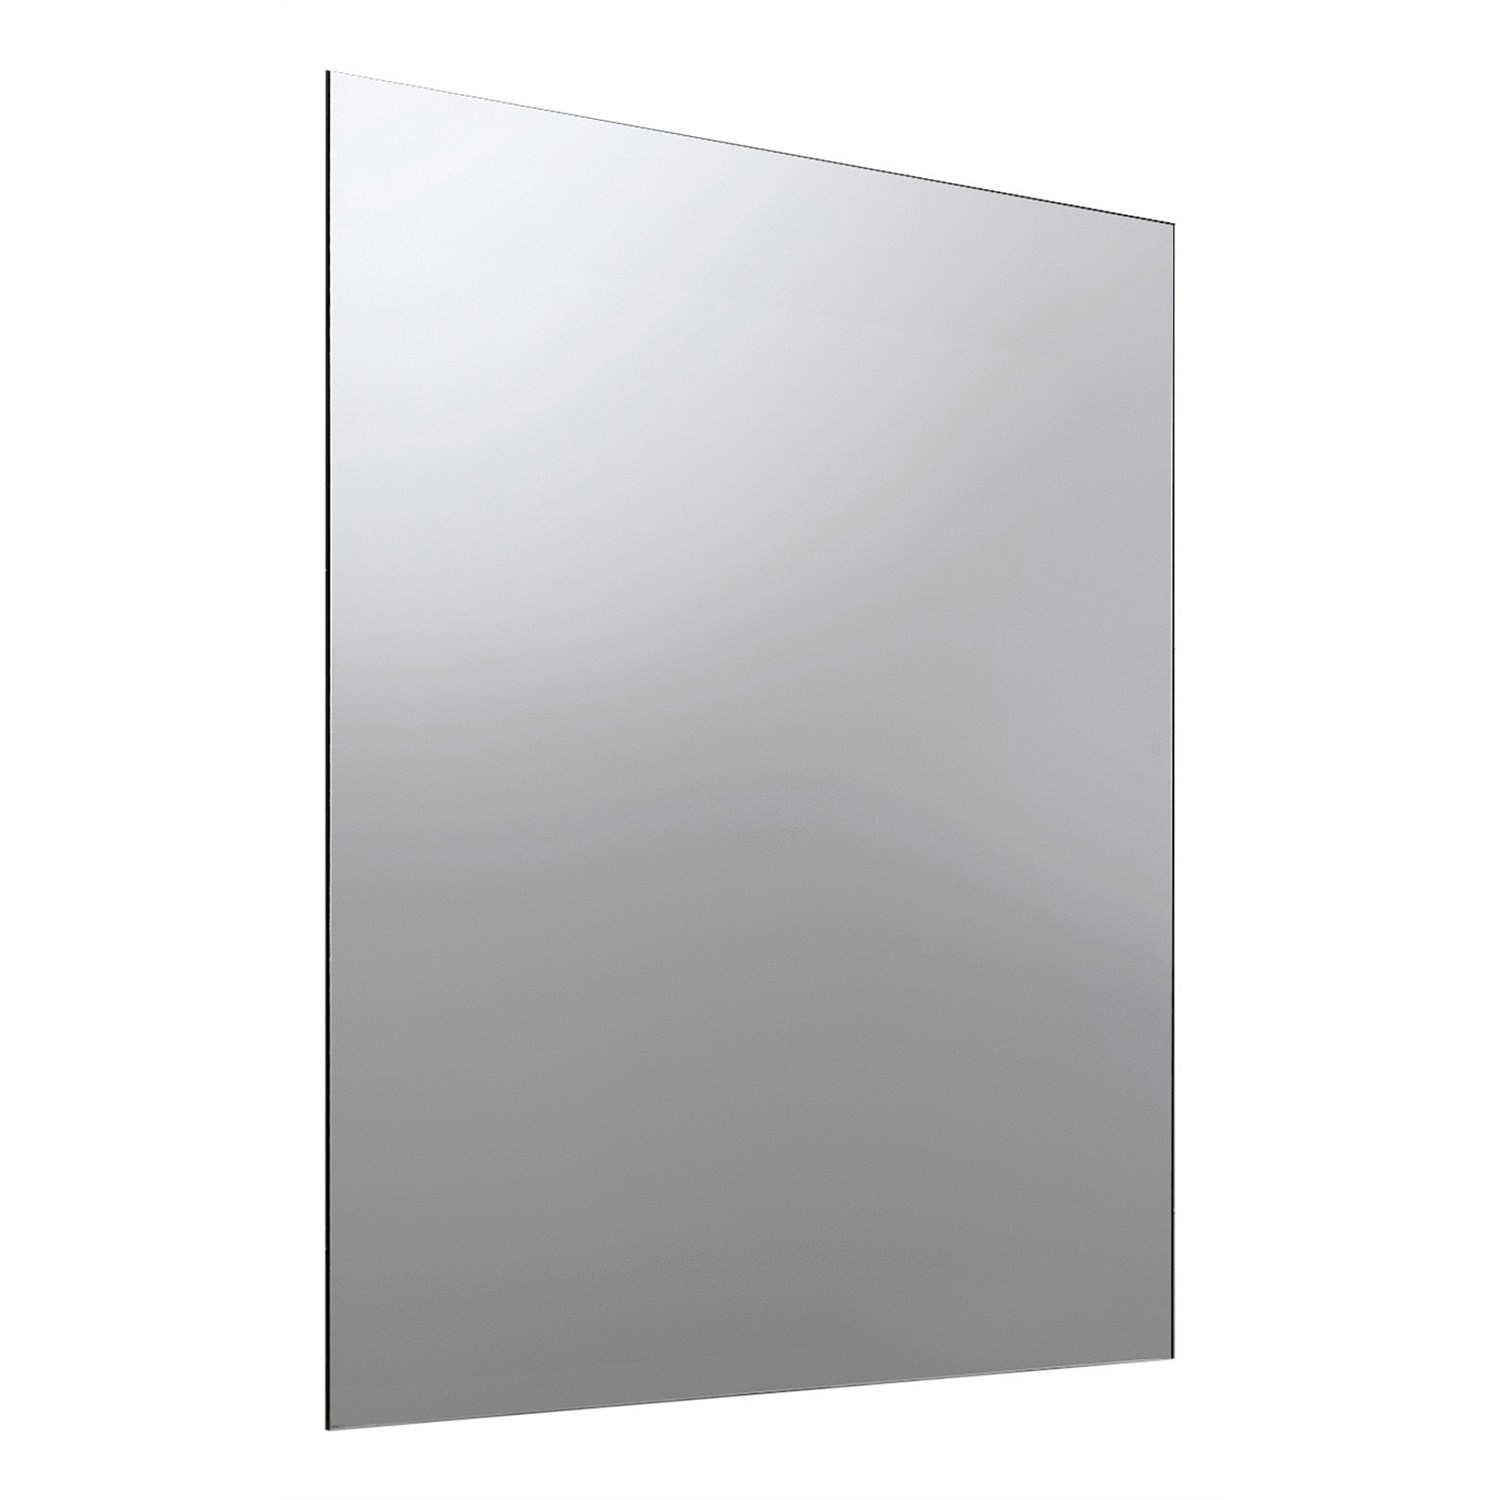 Mirrors Plumbing World Clearlite 500mm Polished Edge